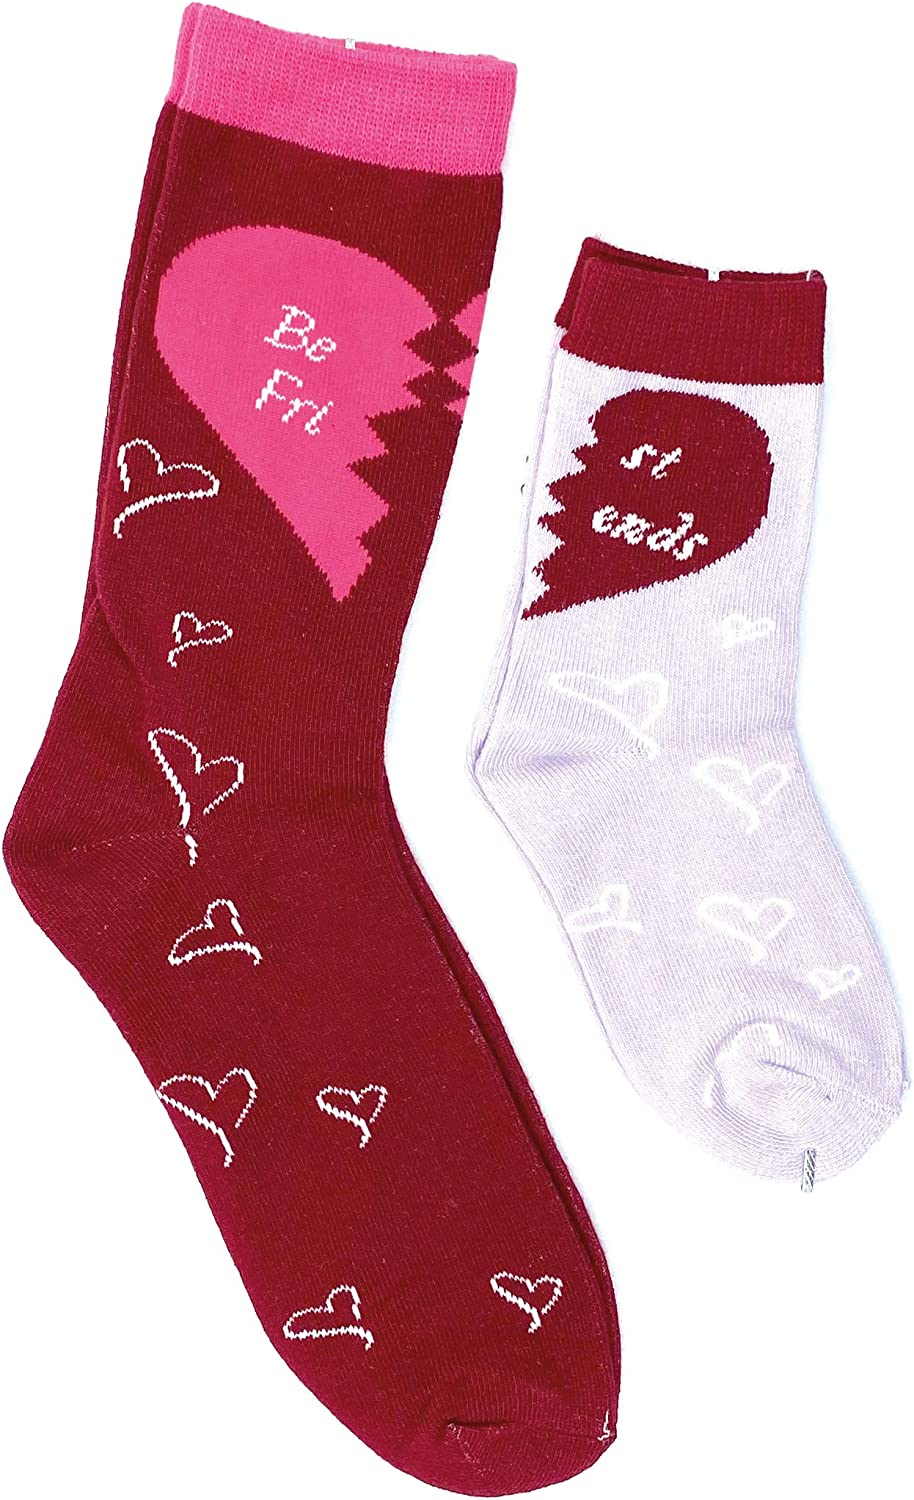 5 ☆ popular Mommy Me 2-Pair Matching Sock Set Best El Paso Mall Friends